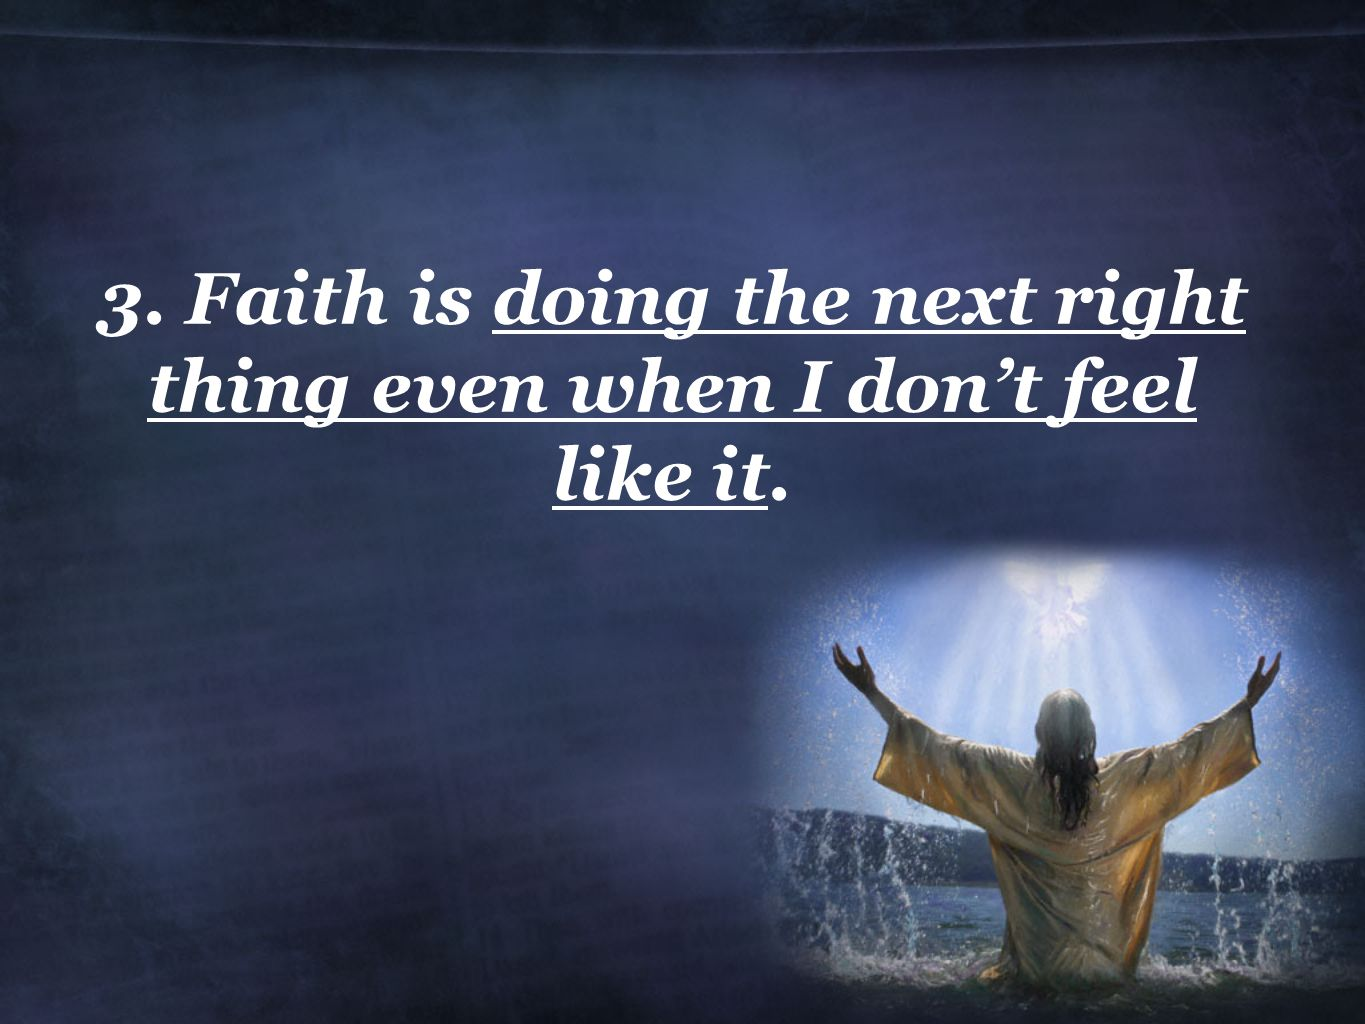 3. Faith is doing the next right thing even when I don't feel like it.